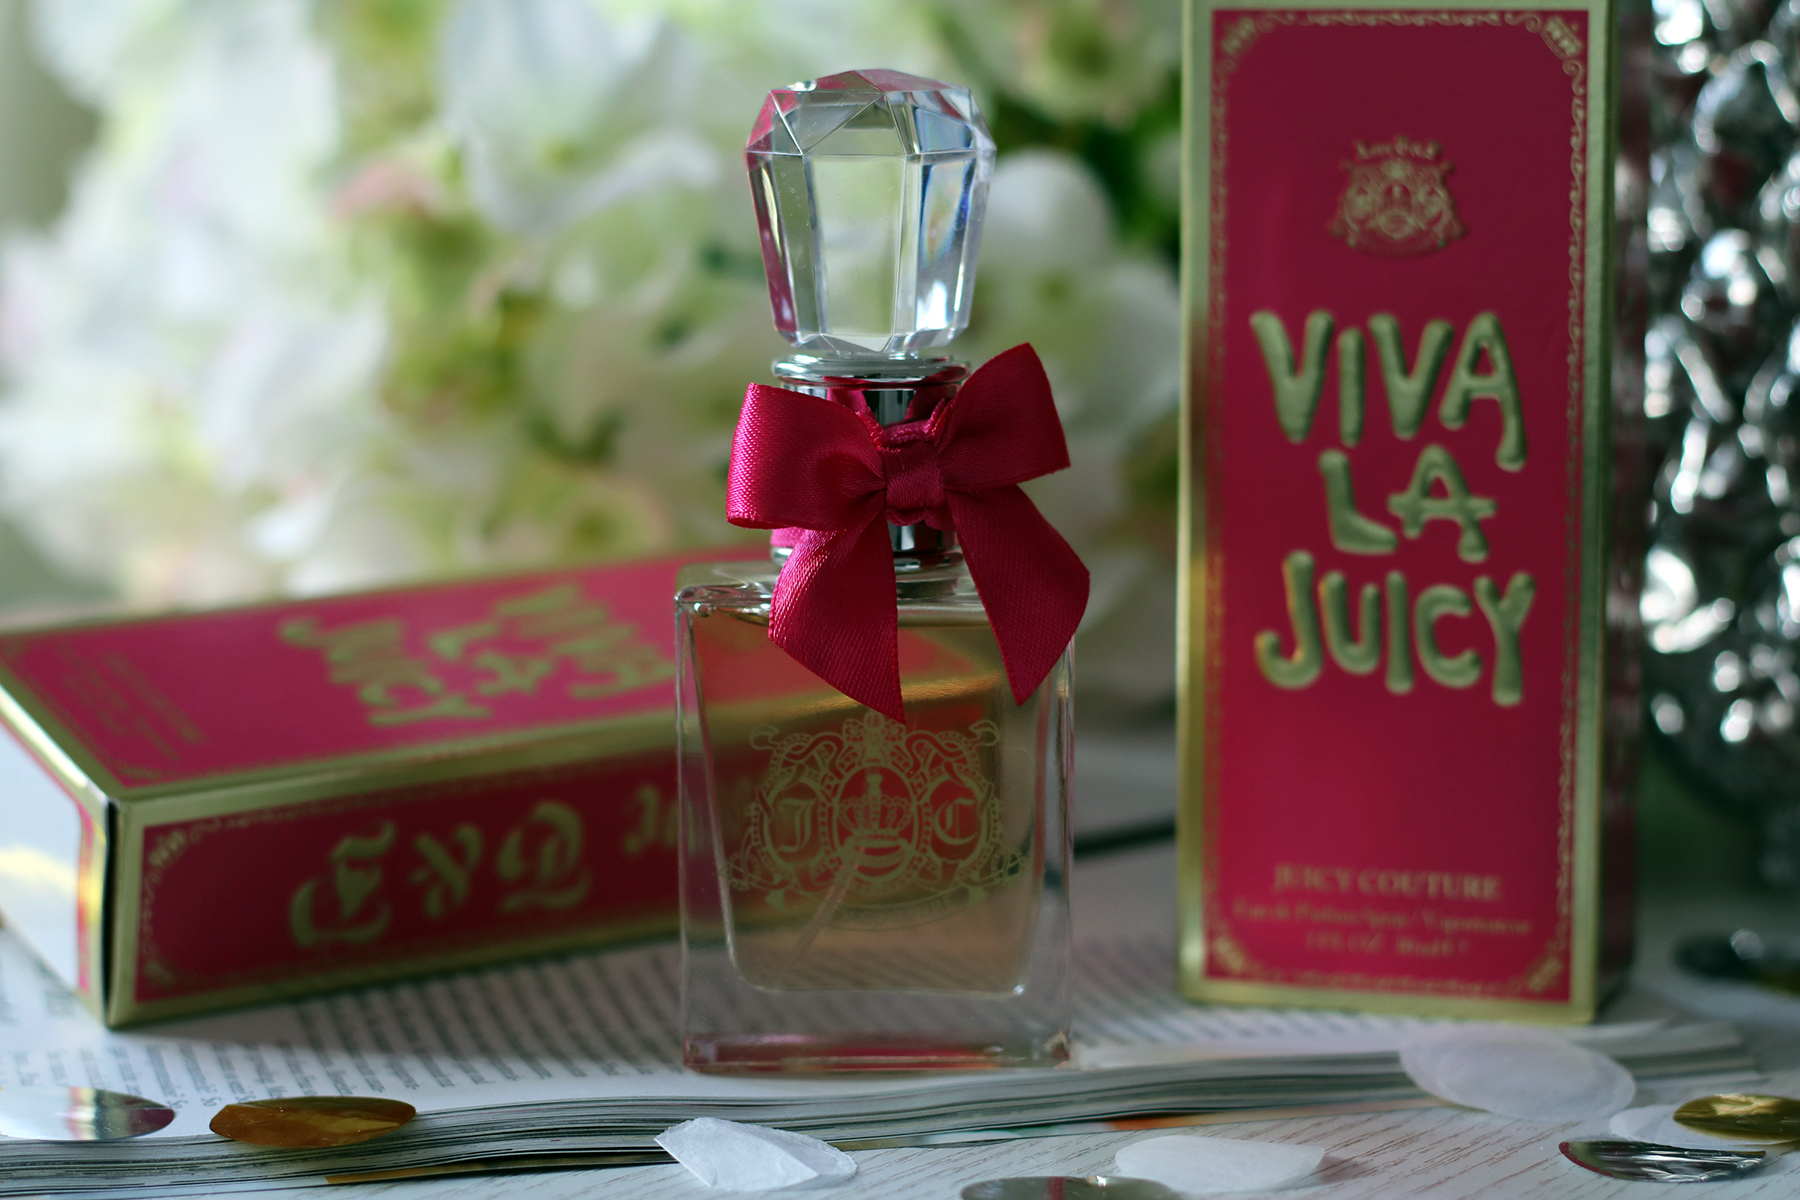 duty-free-shop-düsseldorf-worlddutyfree-beautyblog-juicy-couture-parfüm3